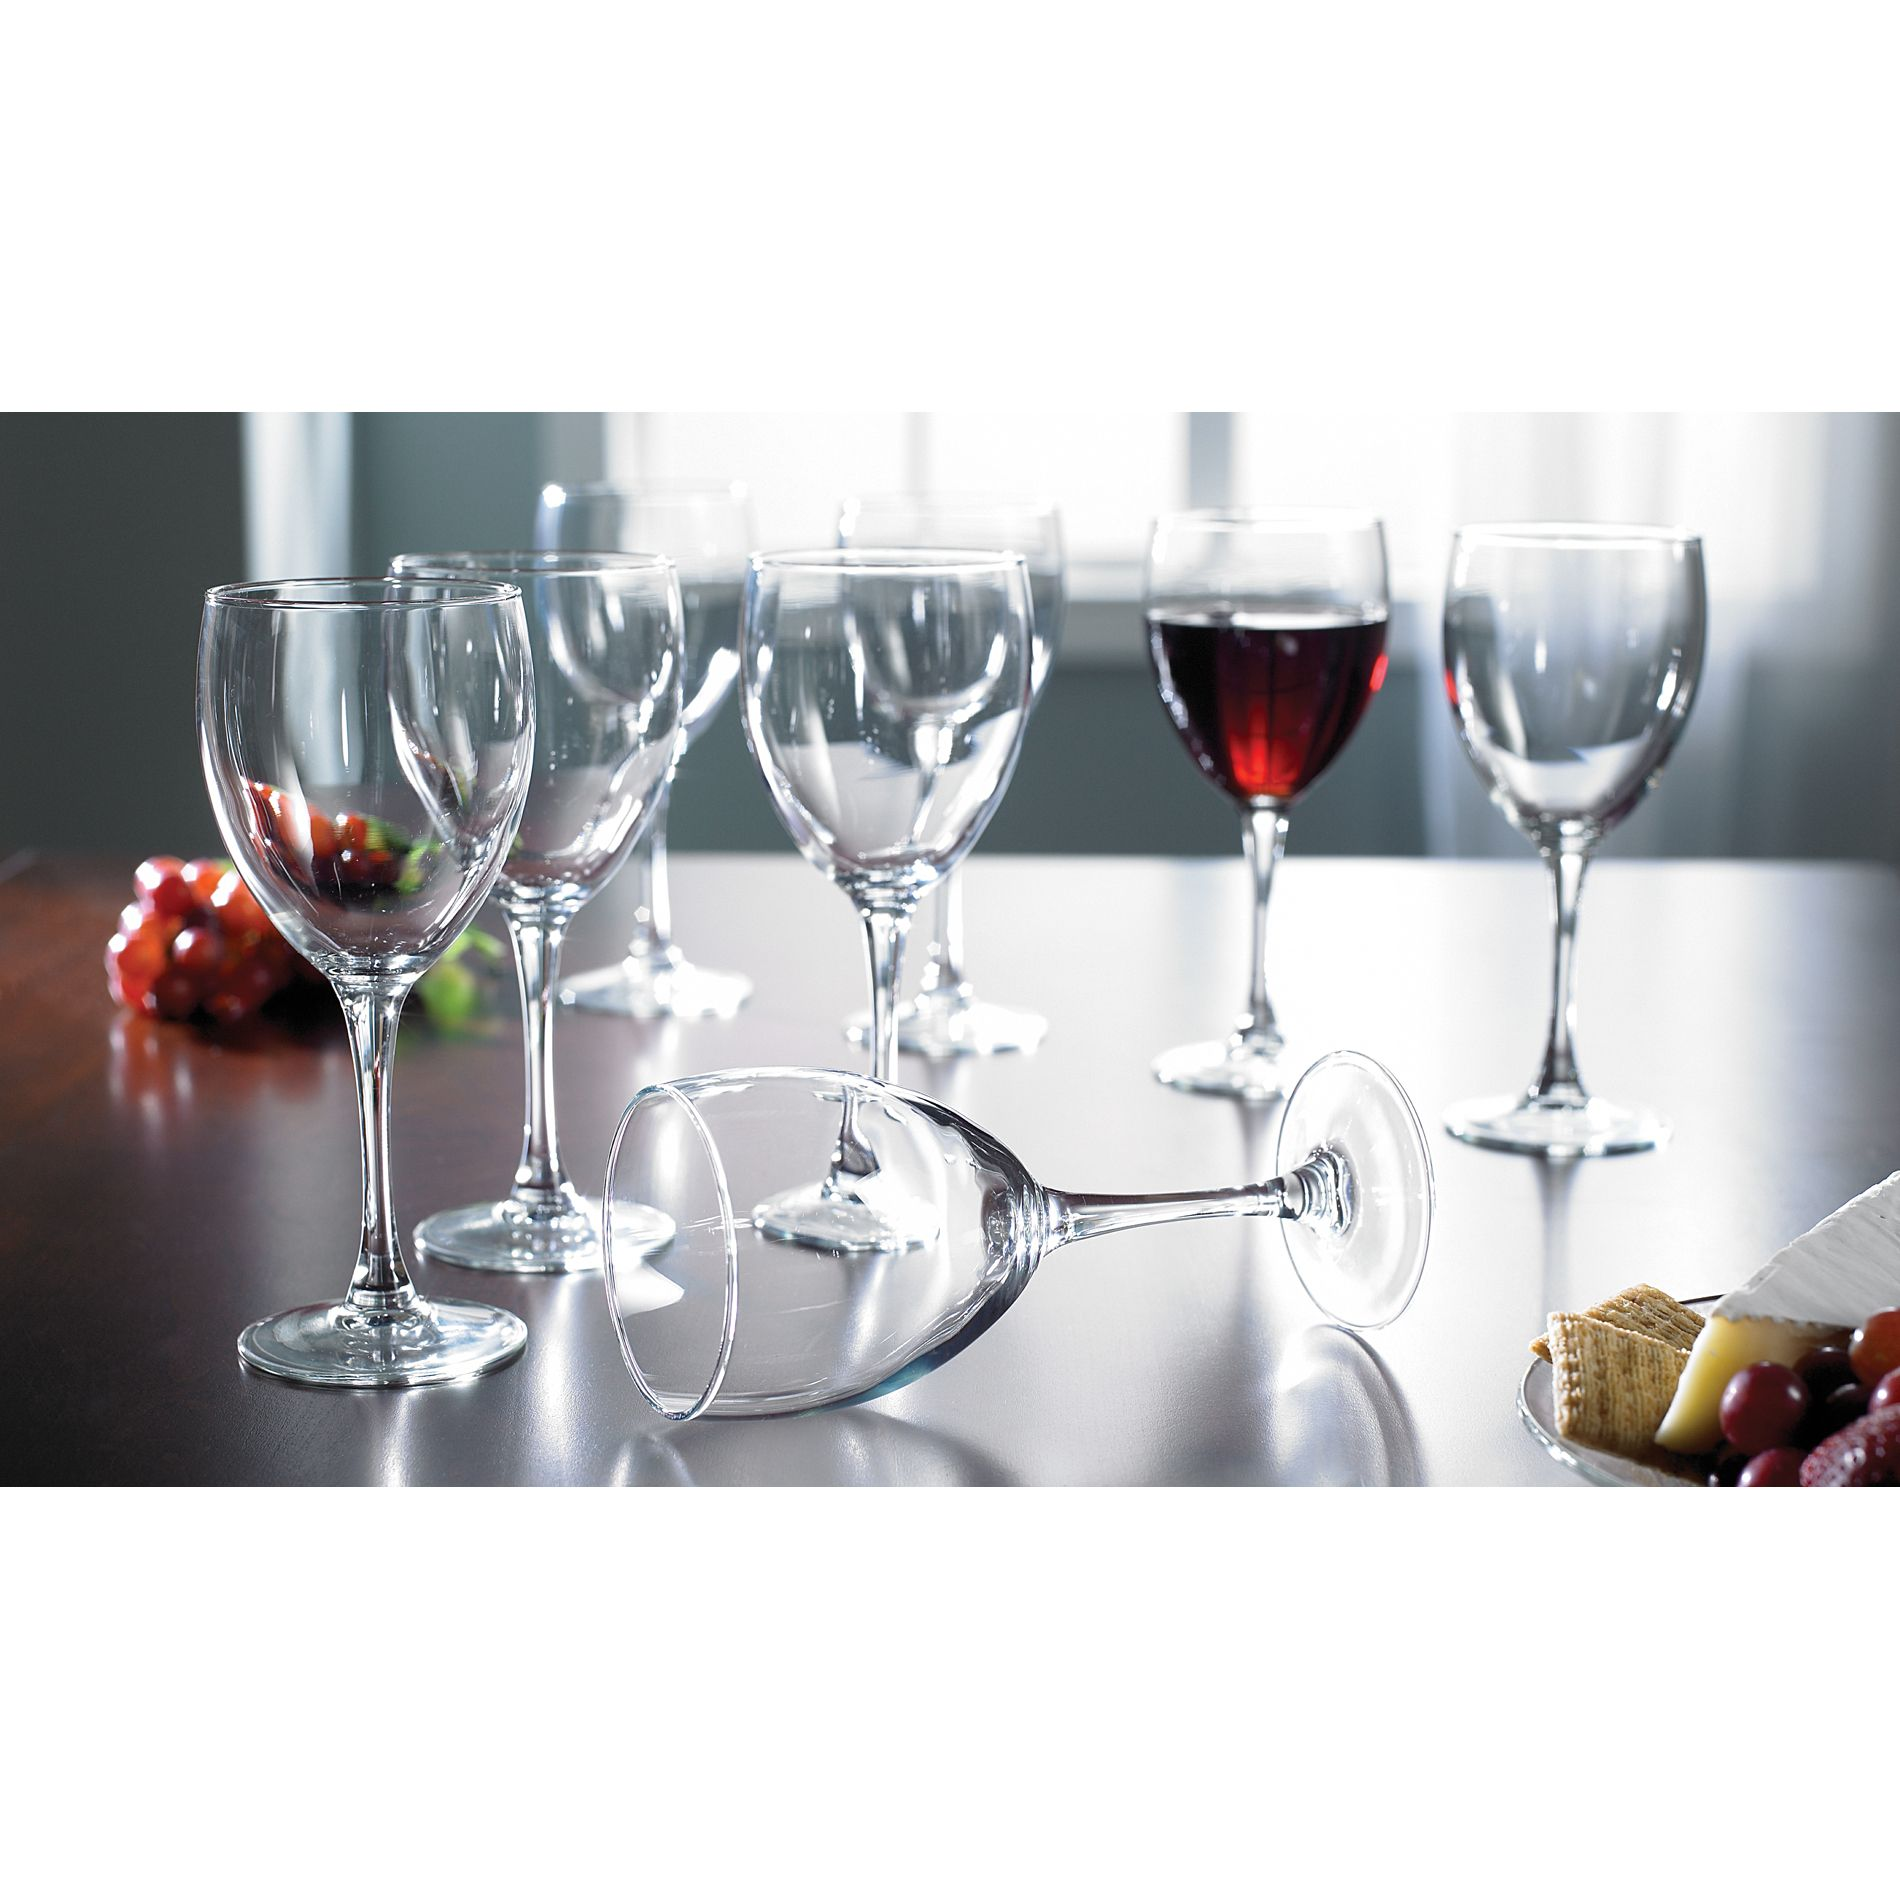 12 Pack Wine Glass Set                                                                                                           at mygofer.com